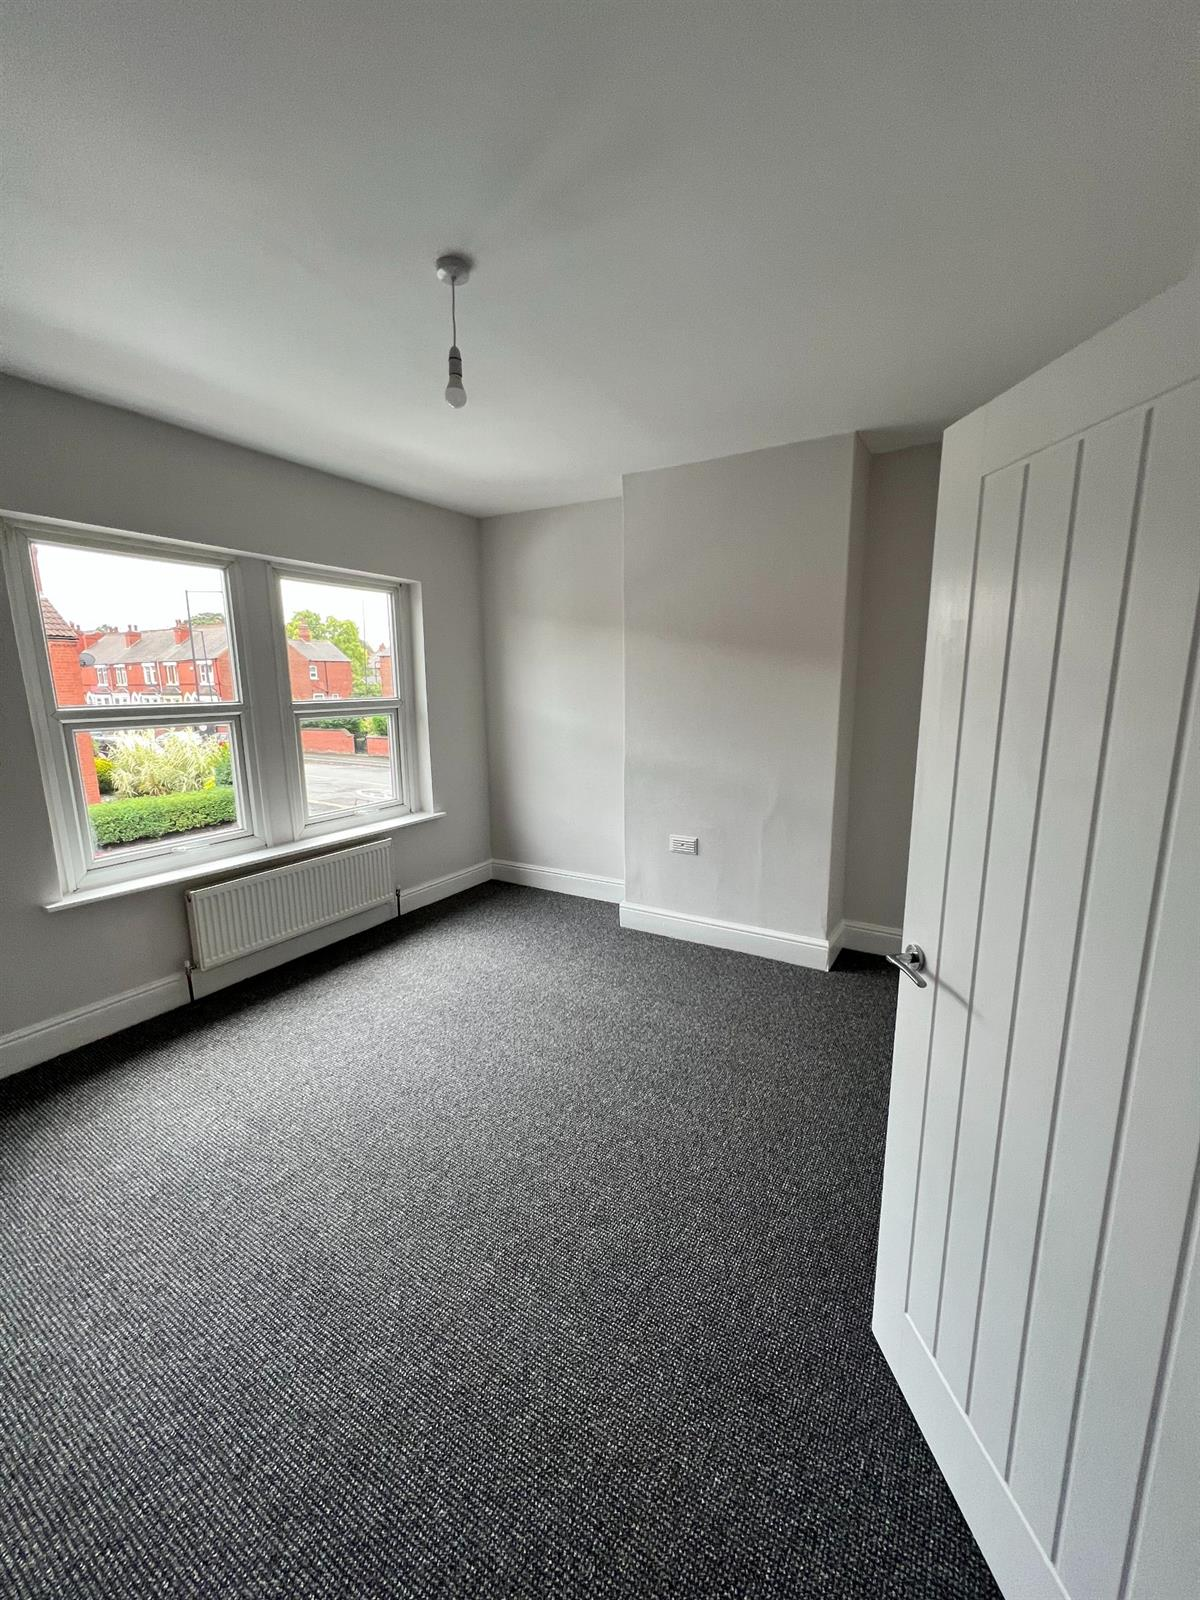 To Let - 3 bedroom Terraced house, Beckett Road, Doncaster - £750 pcm